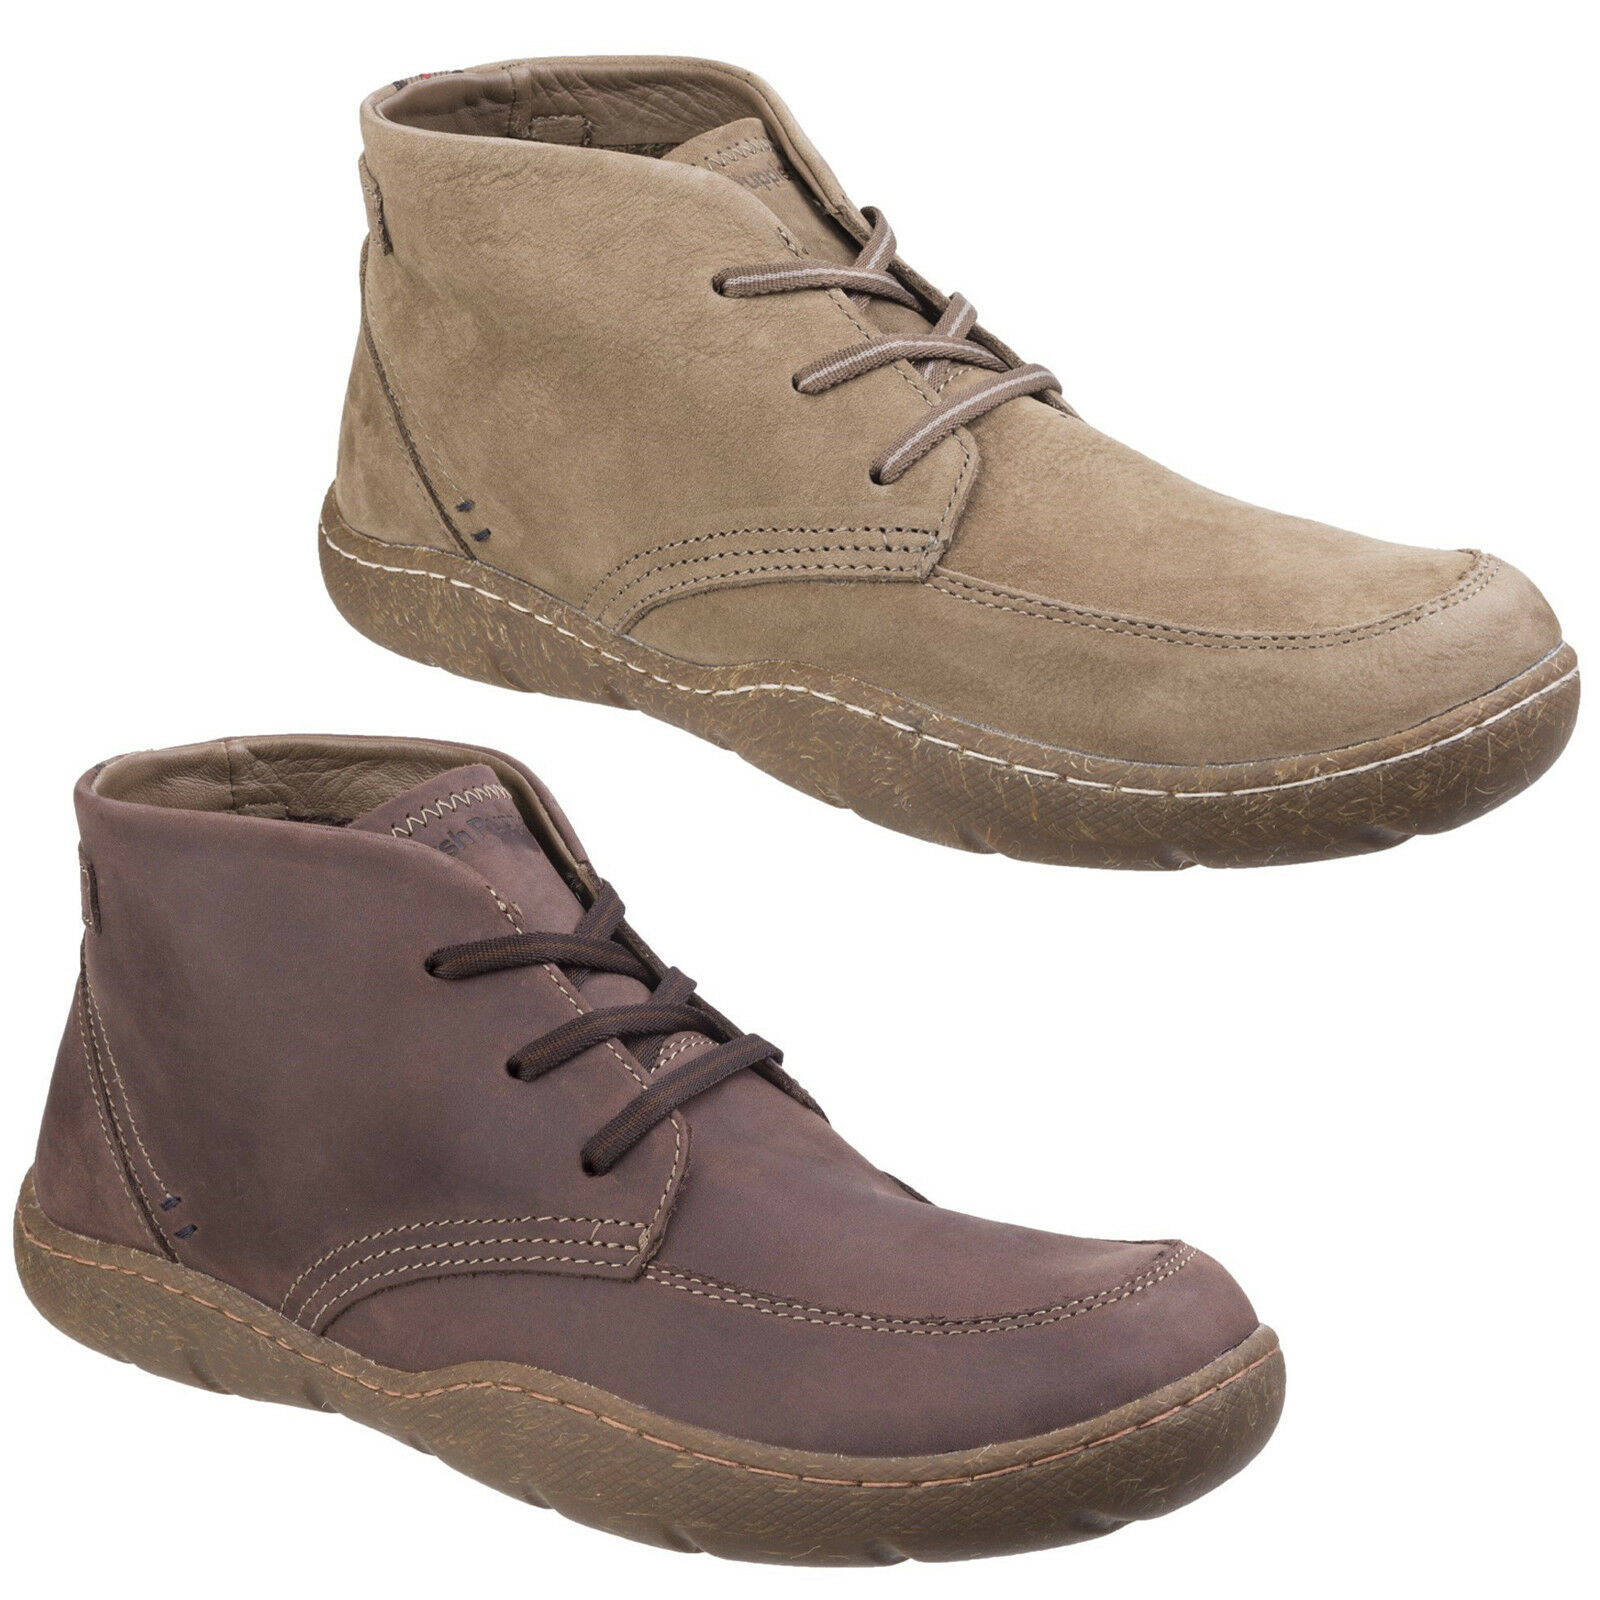 Hush Puppies Finnian Sway Ankle Boots Casual Leather Lace Up Mens Chukka shoes